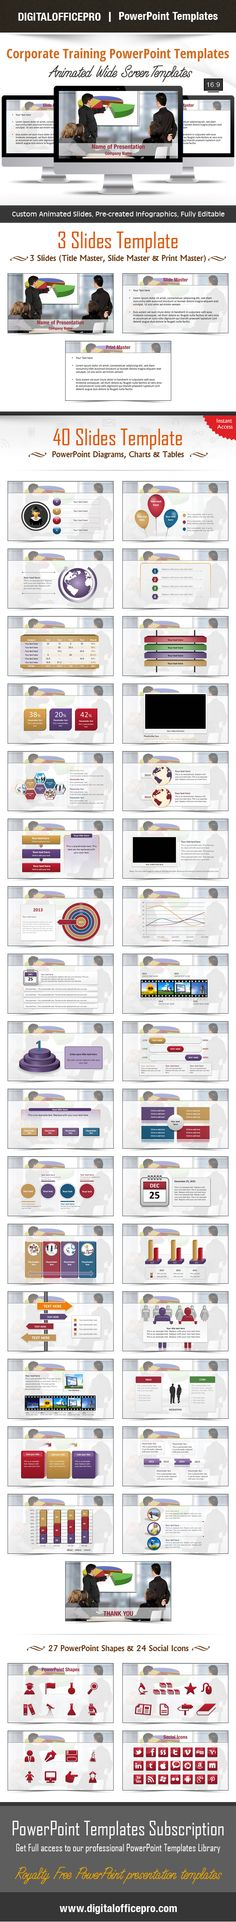 Impress and Engage your audience with Corporate Training PowerPoint Template and Corporate Training PowerPoint Backgrounds from DigitalOfficePro. Each template comes with a set of PowerPoint Diagrams, Charts & Shapes and are available for instant download.